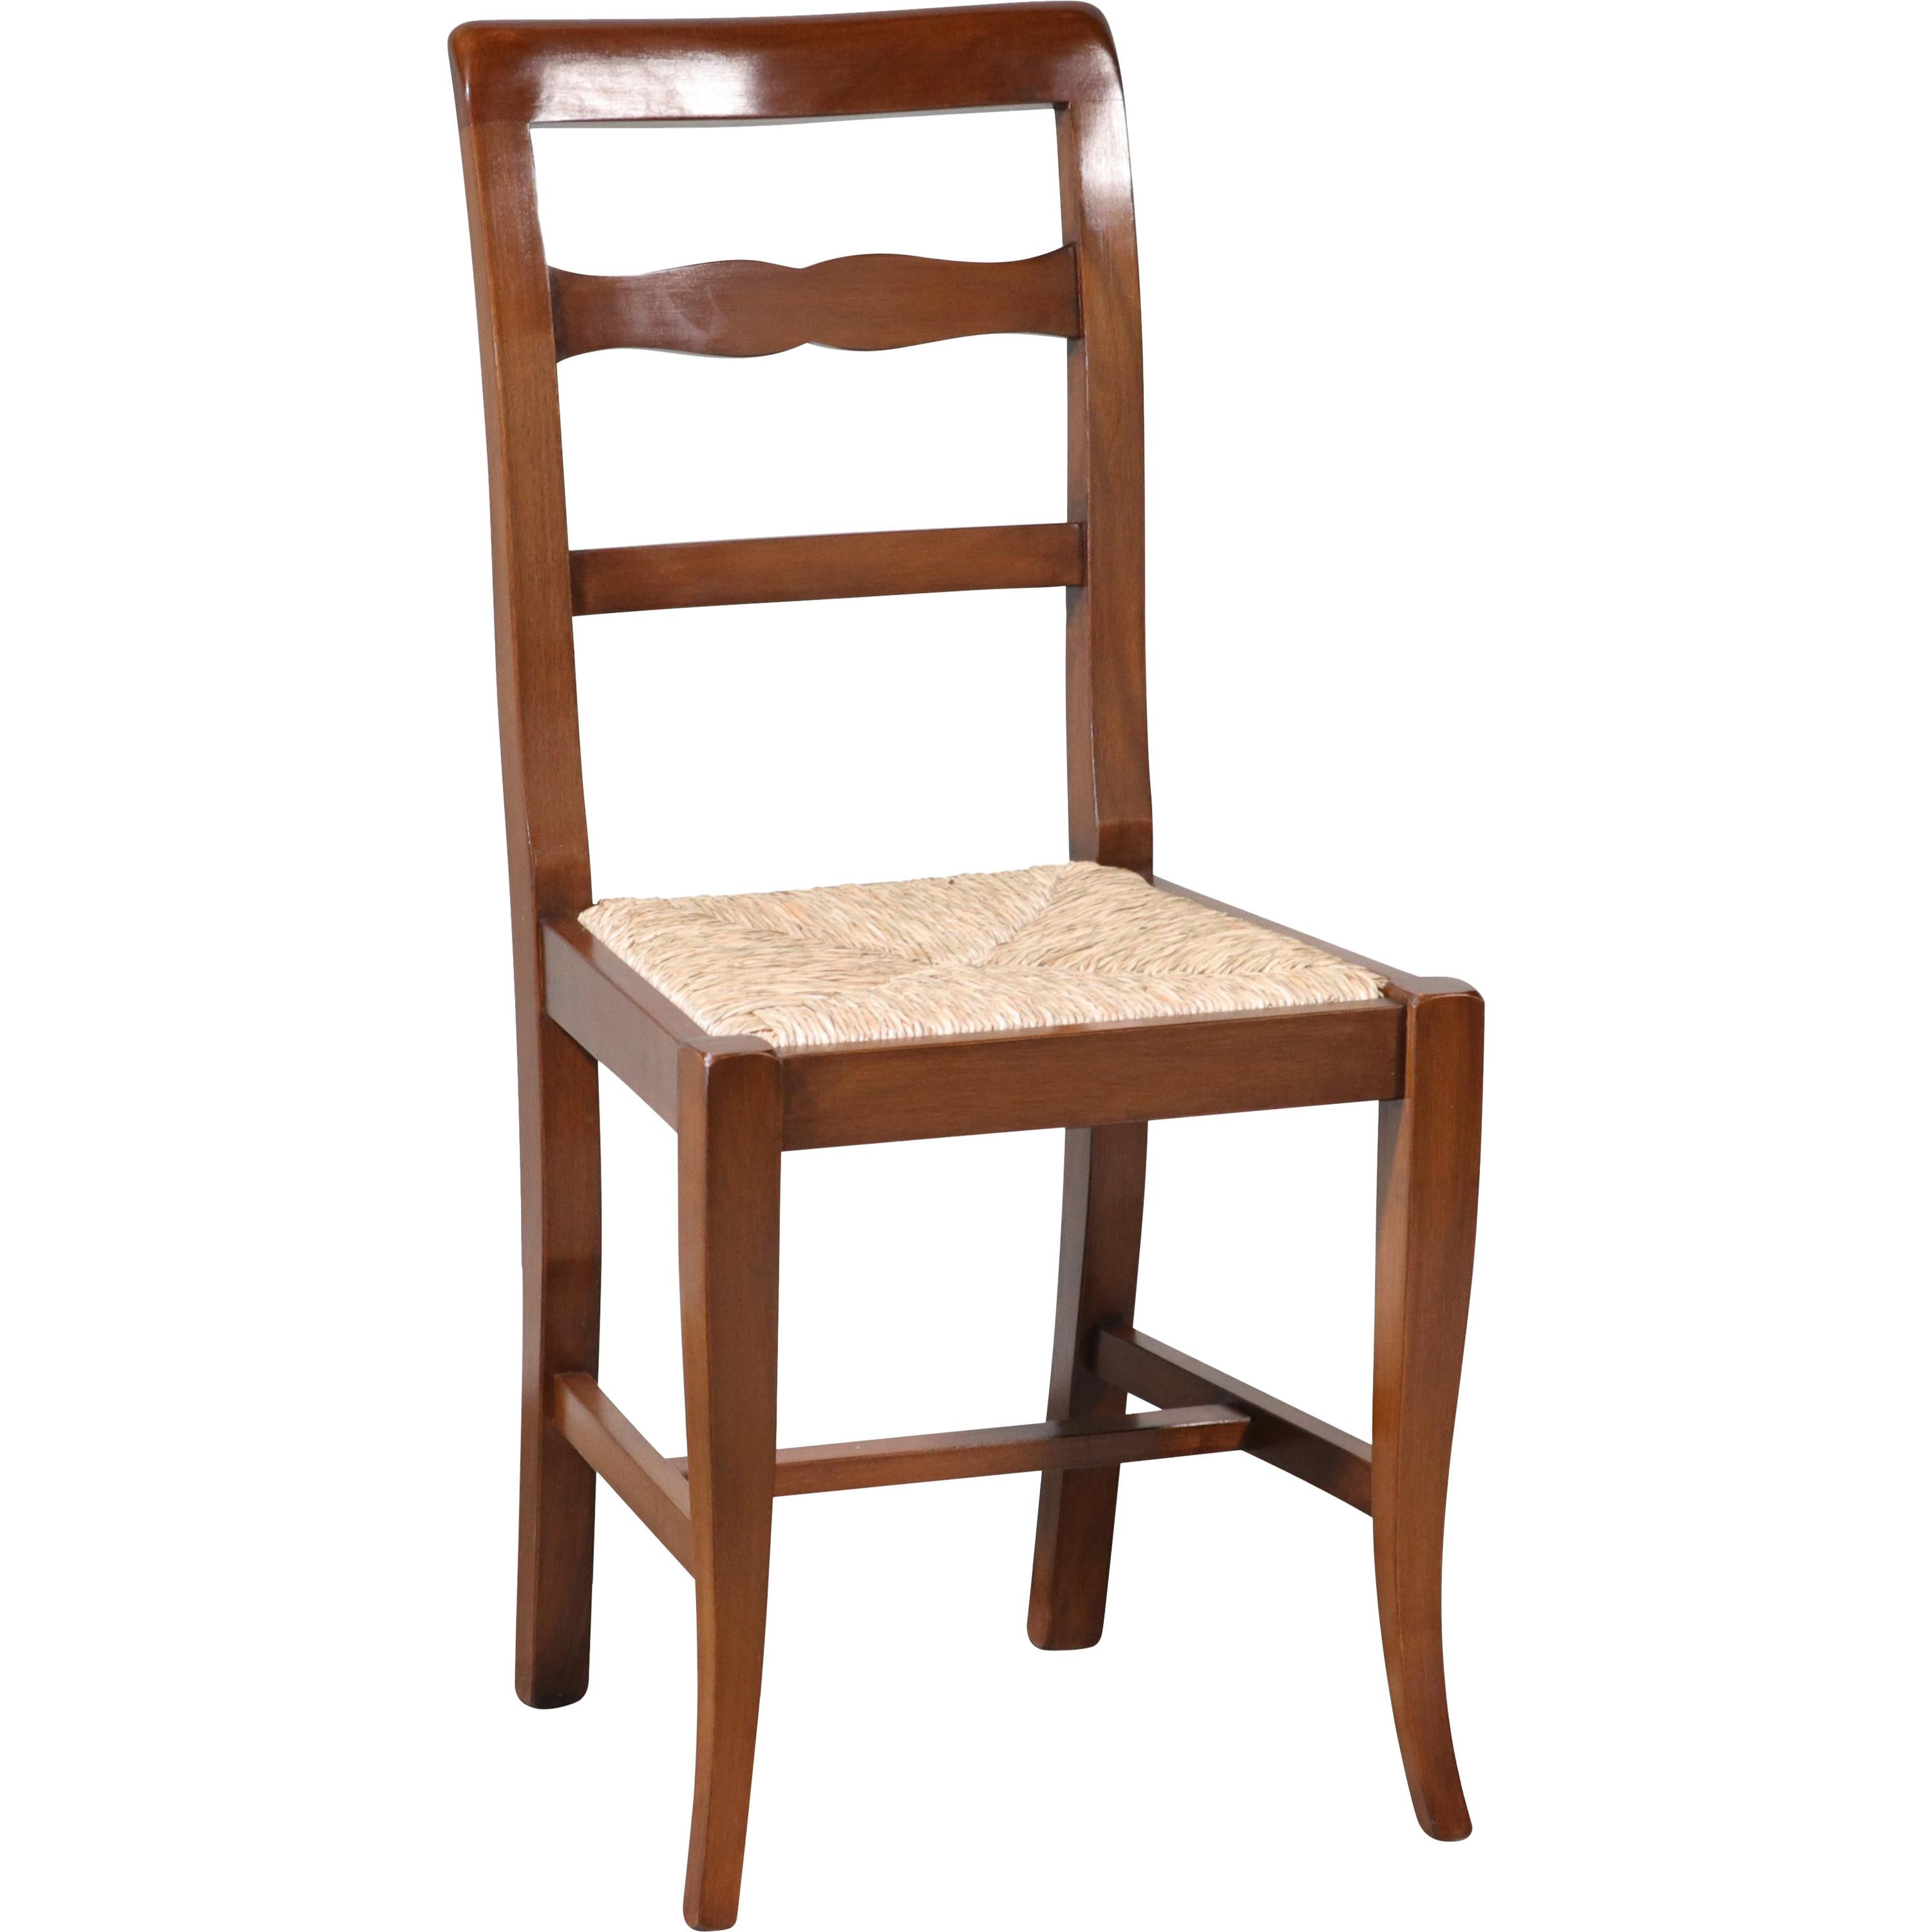 white ladder back chairs rush seats dining table chair cushion covers antique 1930s b1014 modern italian walnut seating ten available